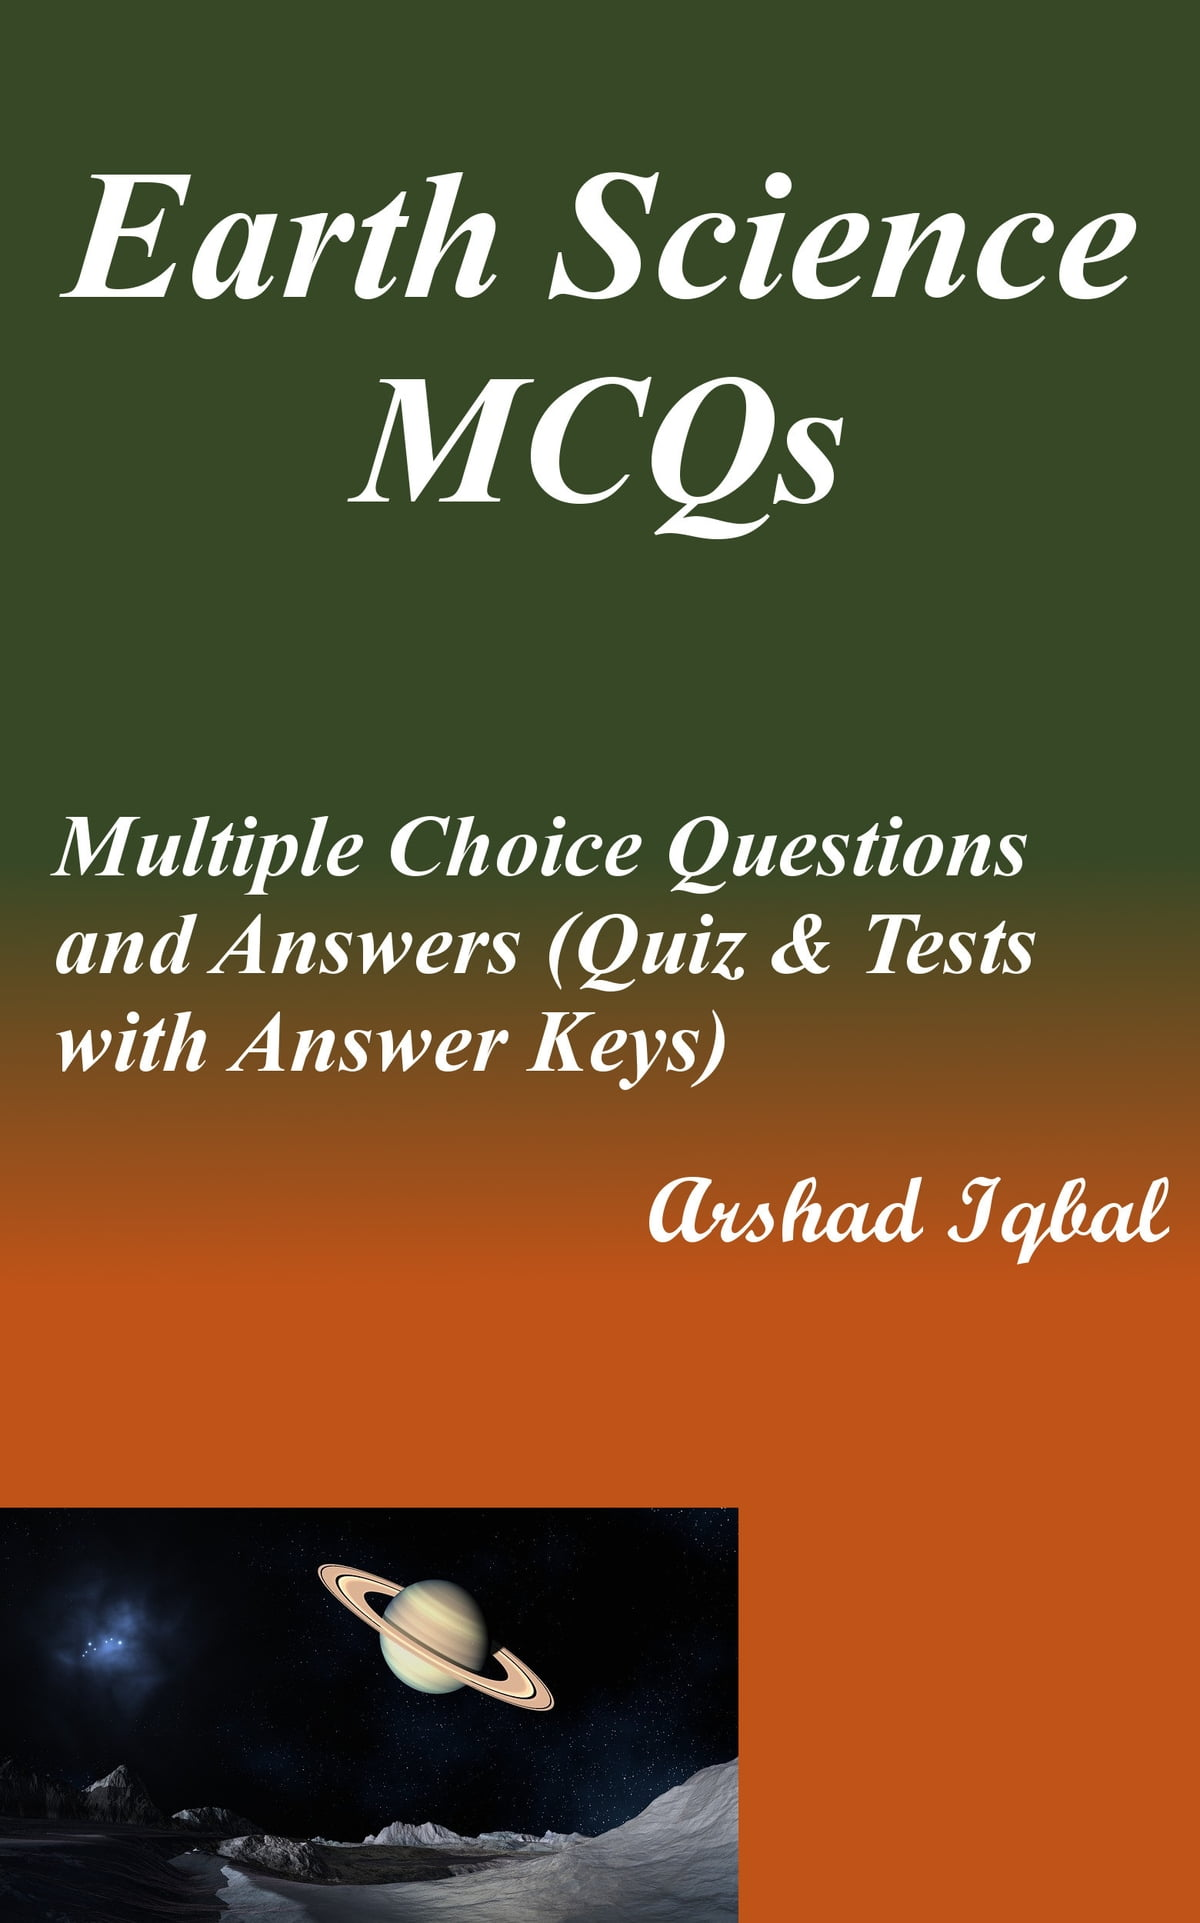 Earth Science Mcqs Multiple Choice Questions And Answers Quiz Amp Tests With Answer Keys E